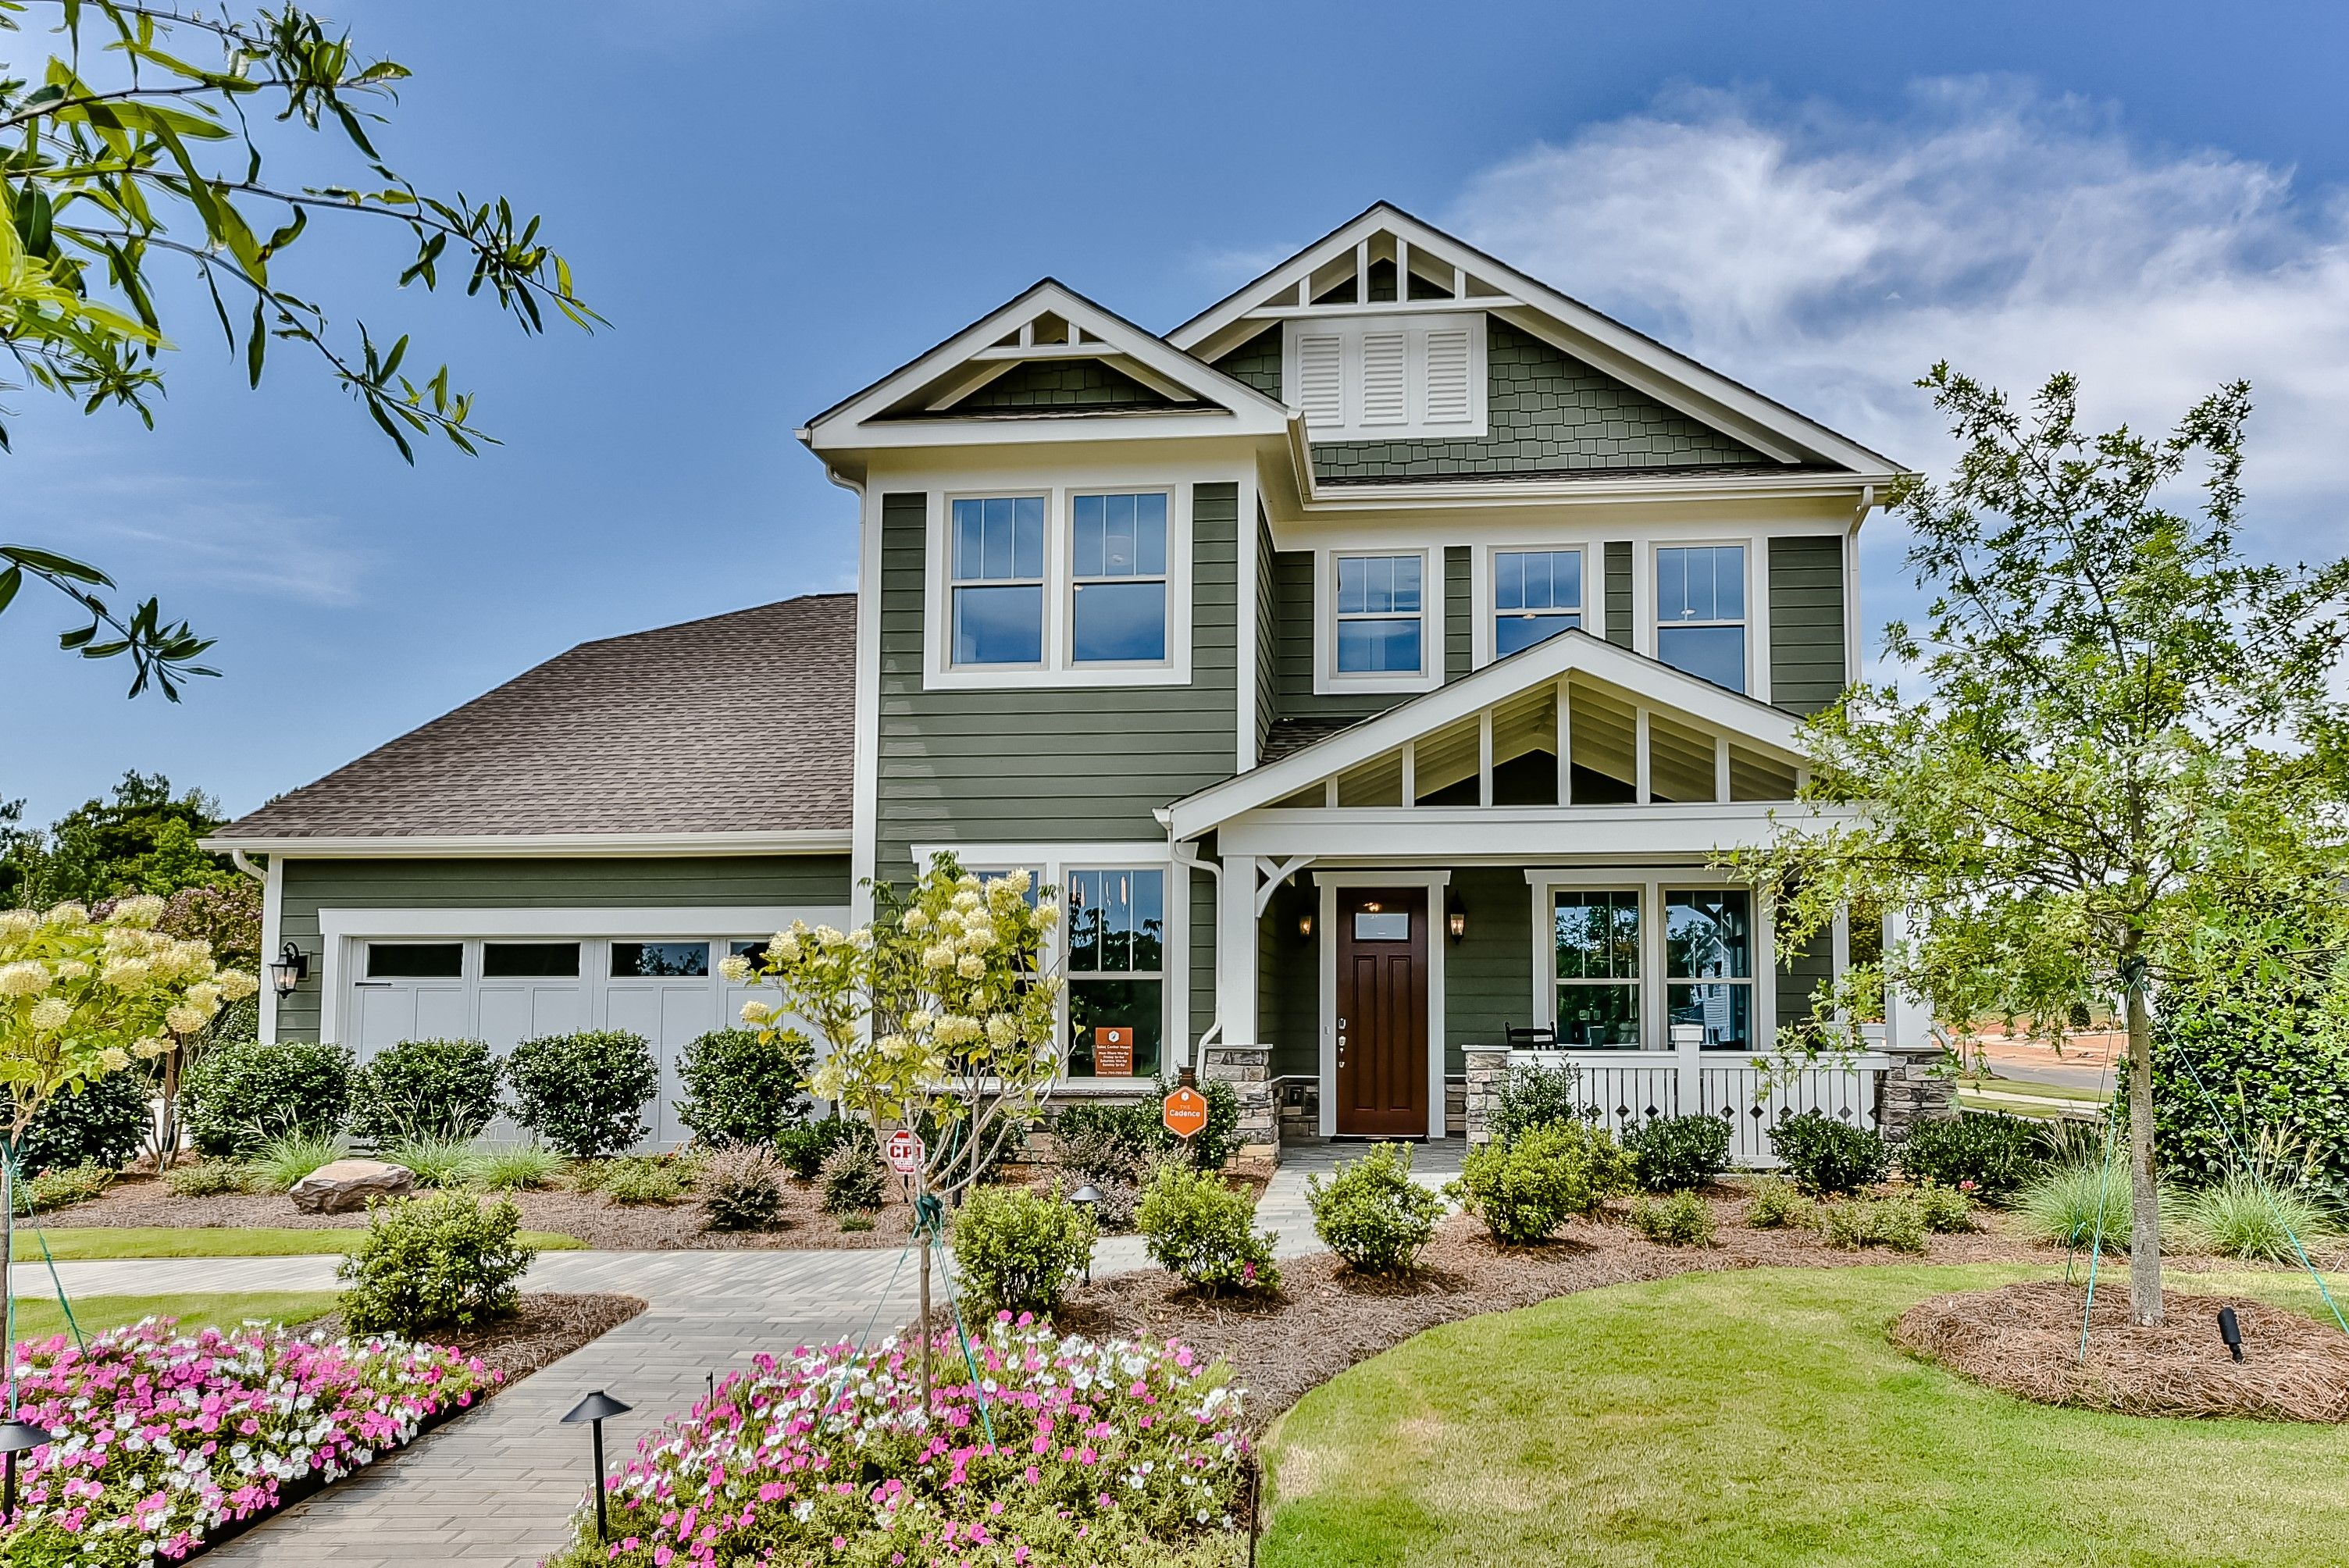 Cadence Southern Arts Crafts Elevation Siding Sw 2851 Sage Green Light Door Sw 283 Waterfront Homes For Sale Waterfront Homes Architectural Shingles